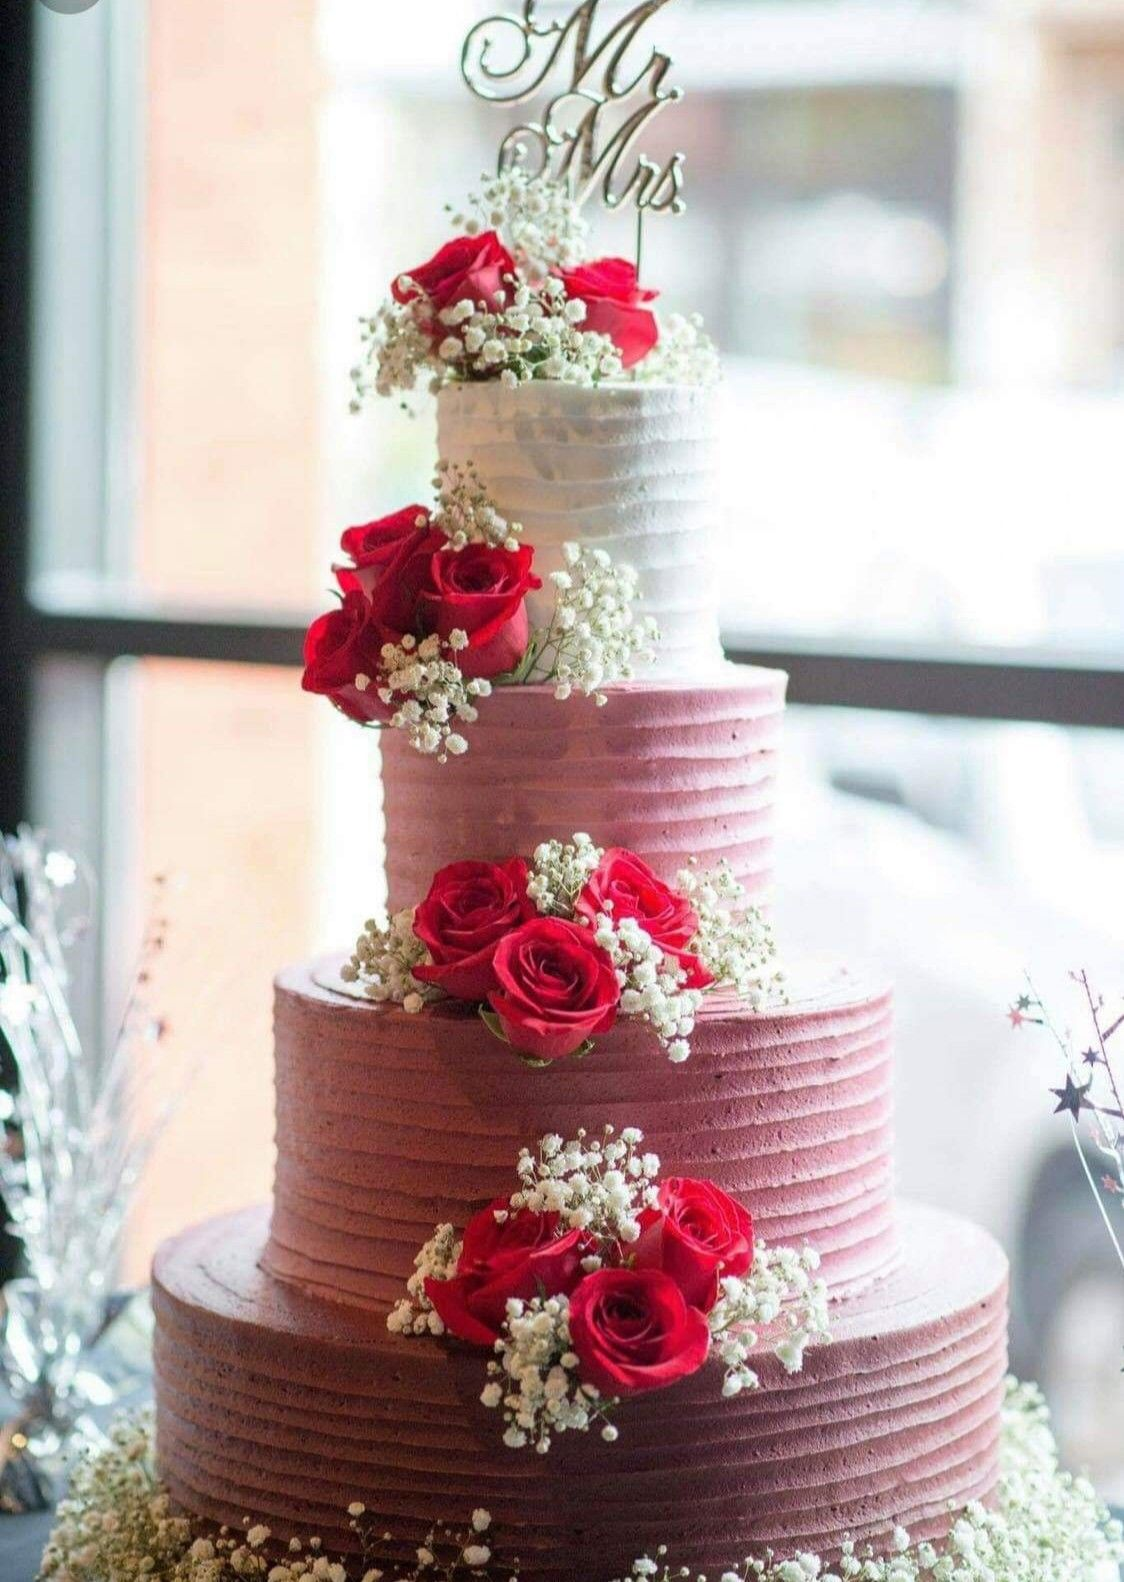 Pin by Natalie Kintz on Rose gold and burgundy wedding